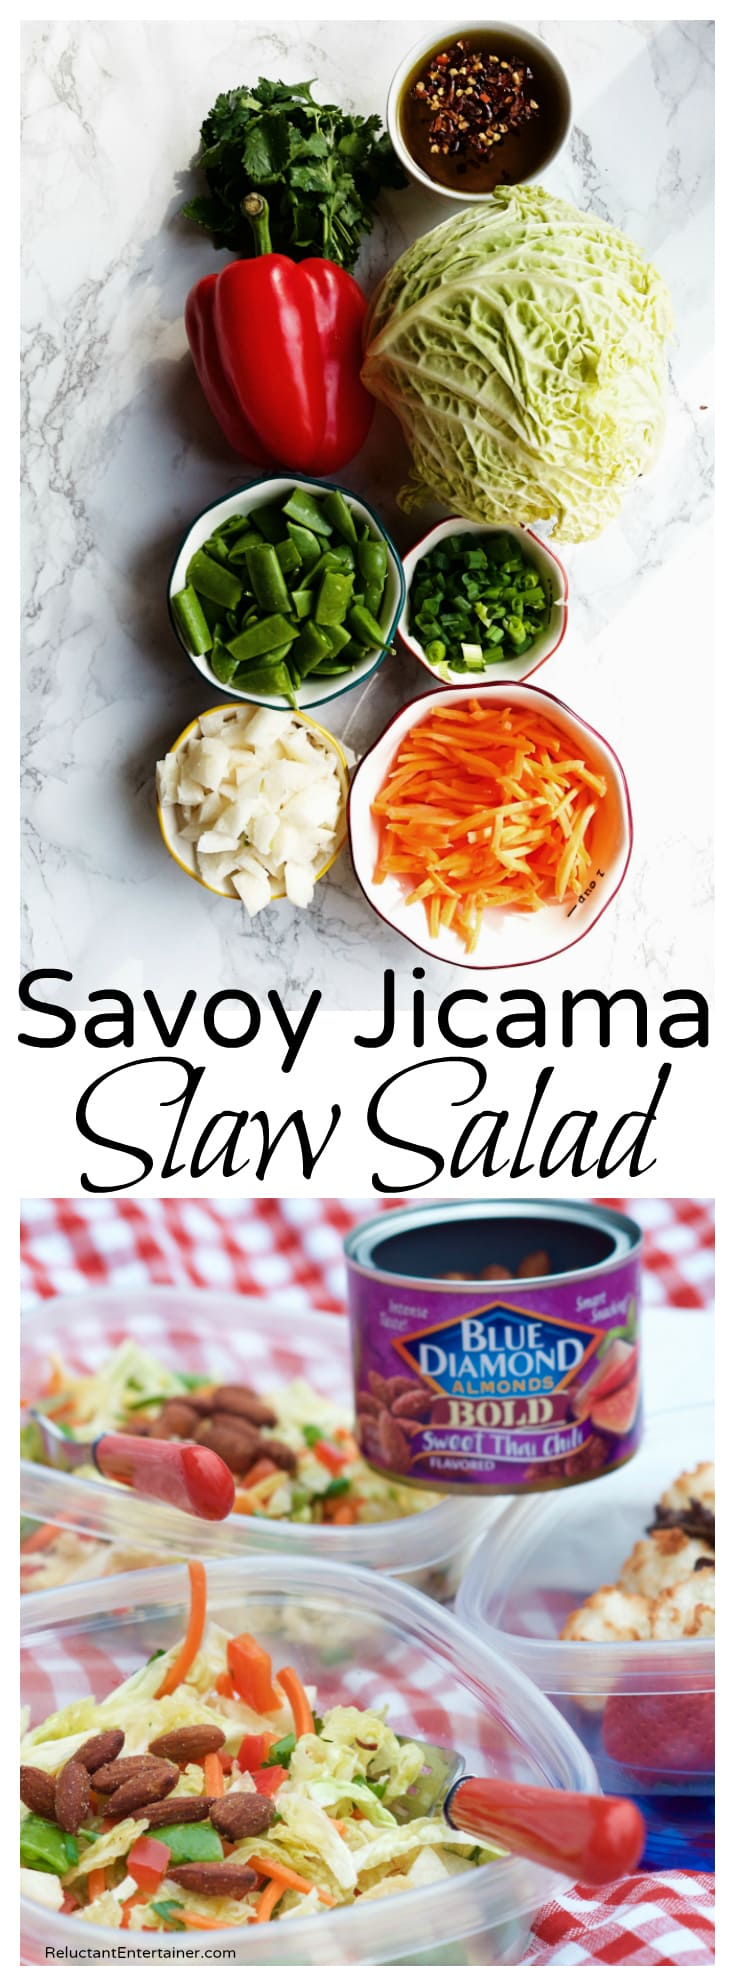 Savoy Jicama Slaw Salad Recipe partnered with Blue Diamond